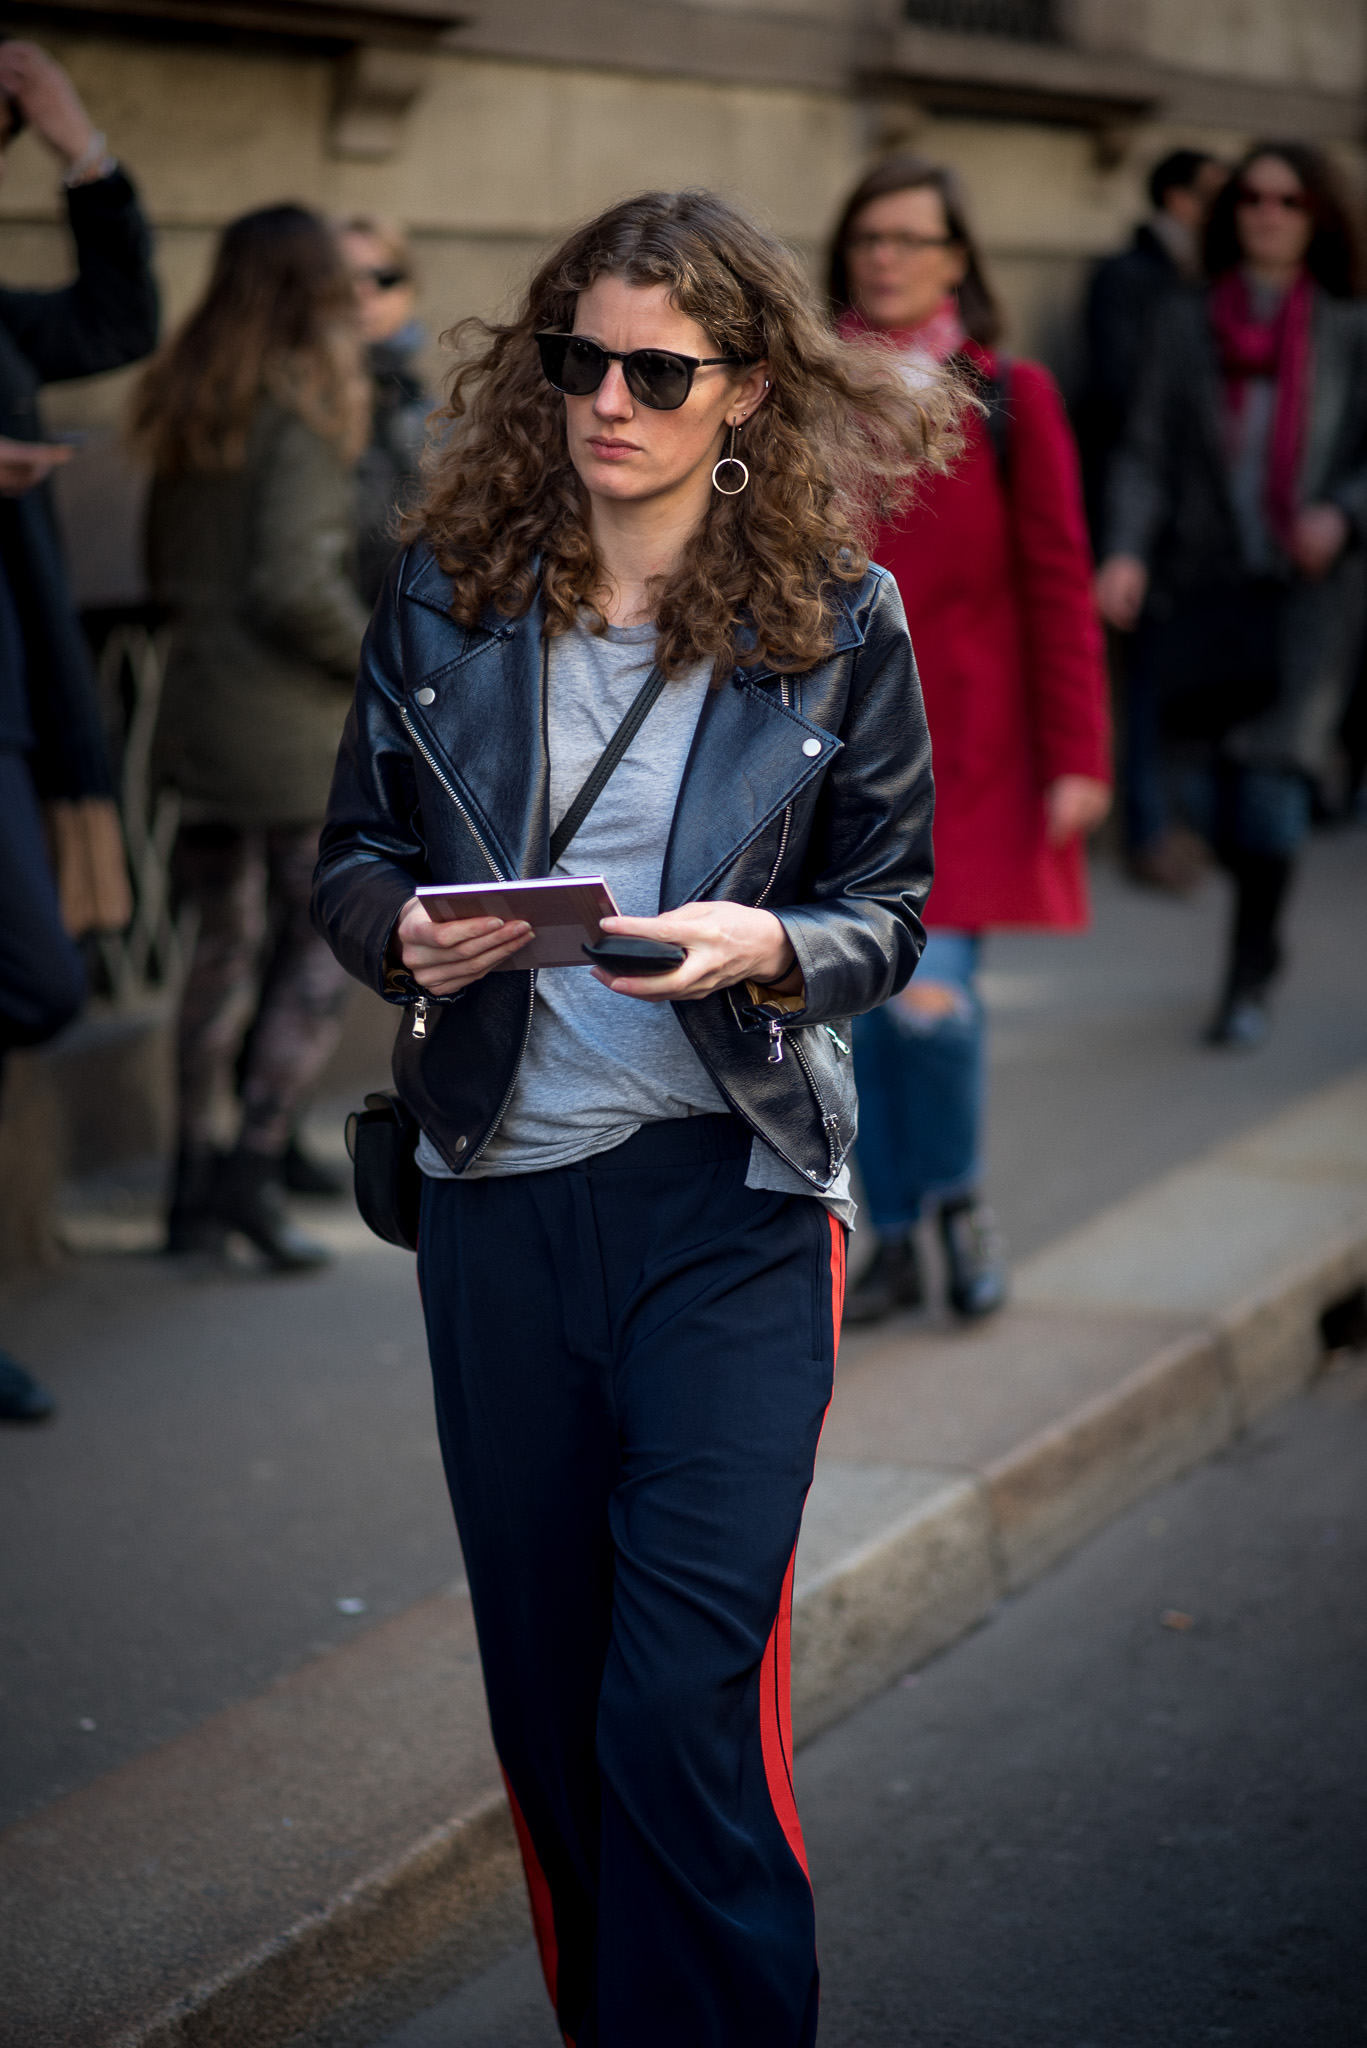 Street Style Moments_Trussardi_Milan Fashion Week_February 26th 2017_Photography Annika Lagerqvist_www.annikasomething.com